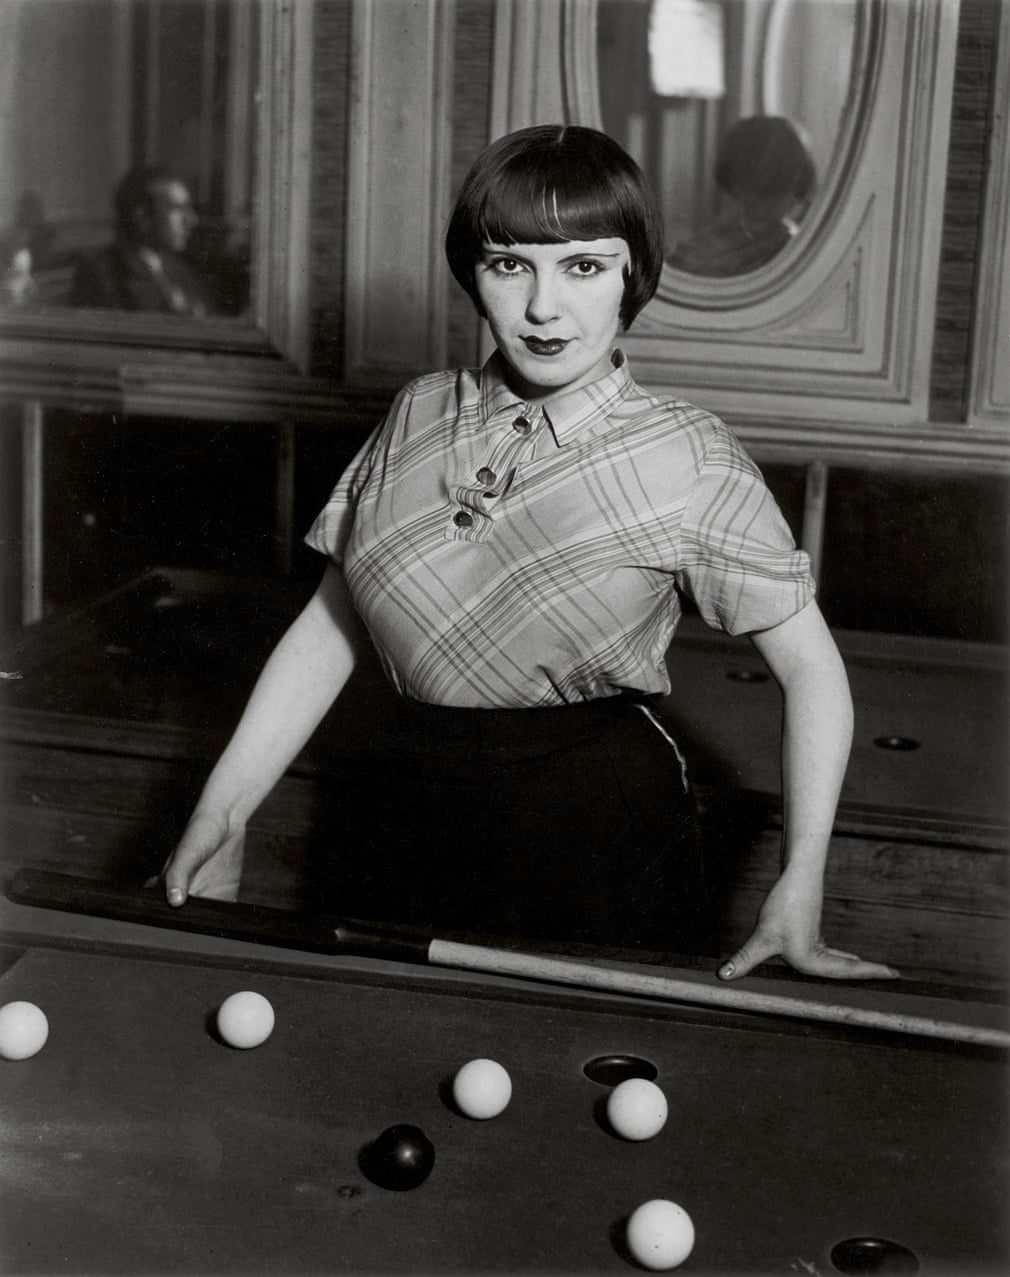 Billiard player, Boulevard Rochechouart, 1932-33